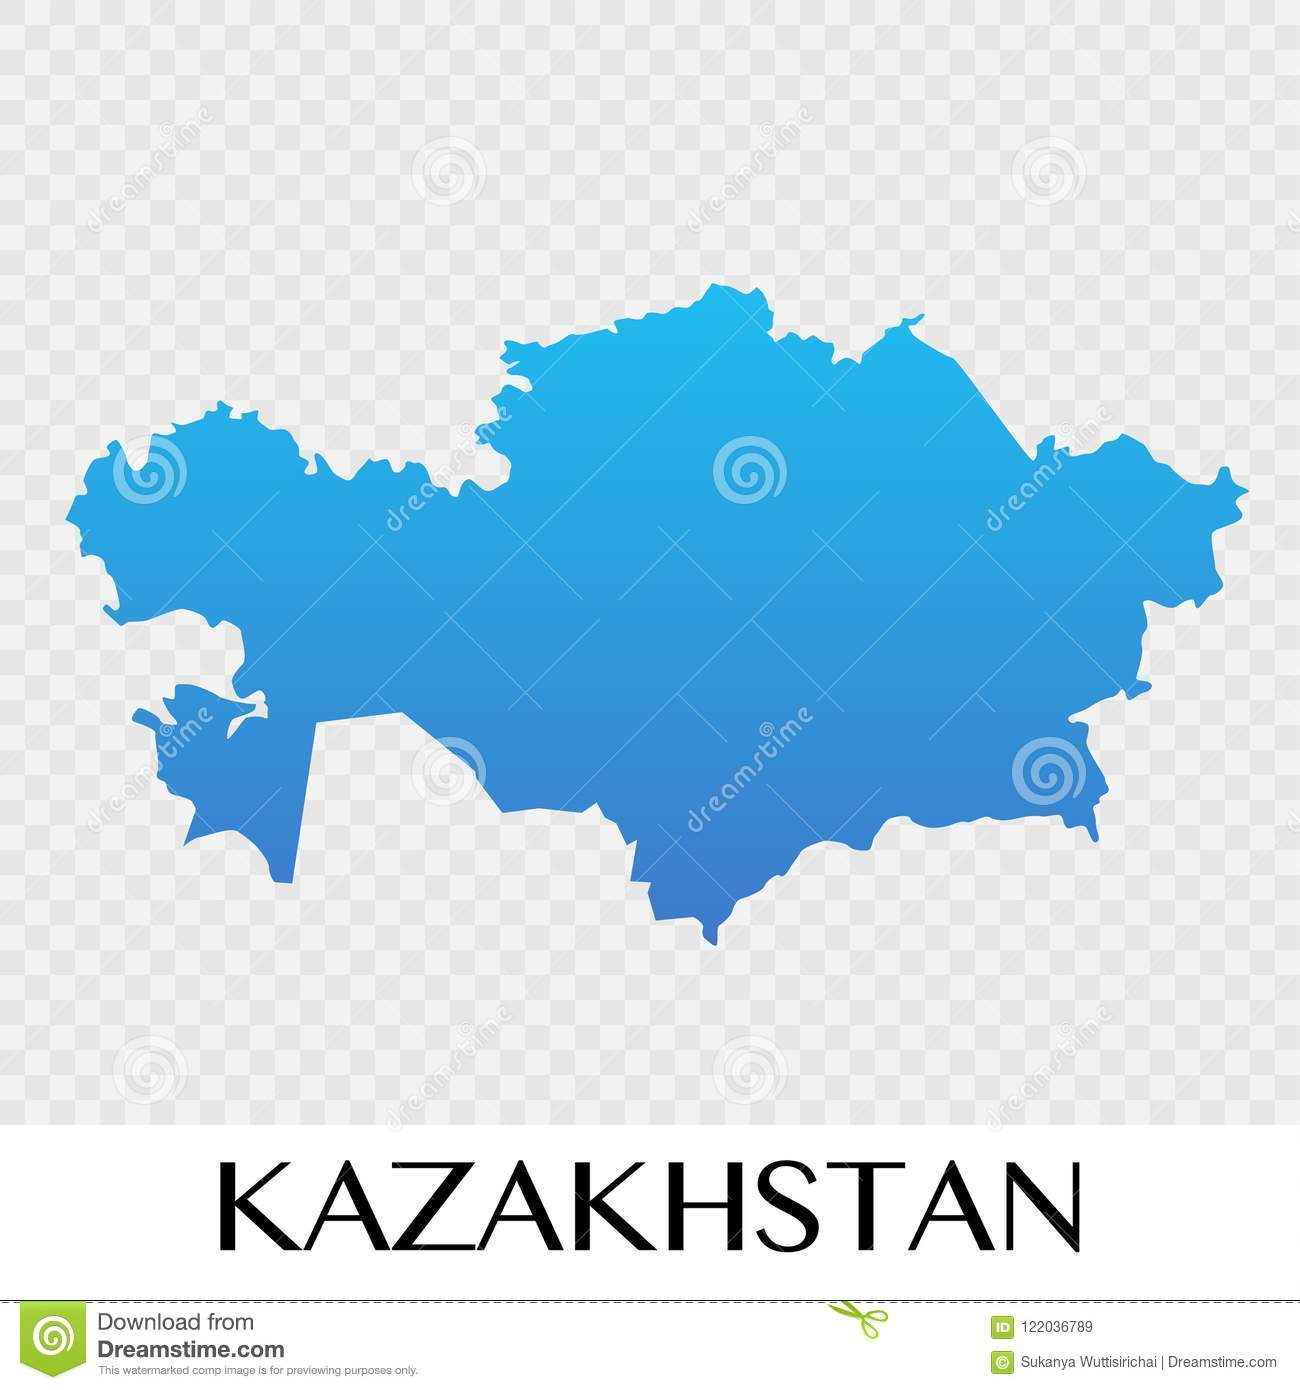 Map Of Asia Continent.Kazakhstan Map In Asia Continent Illustration Design Stock Vector